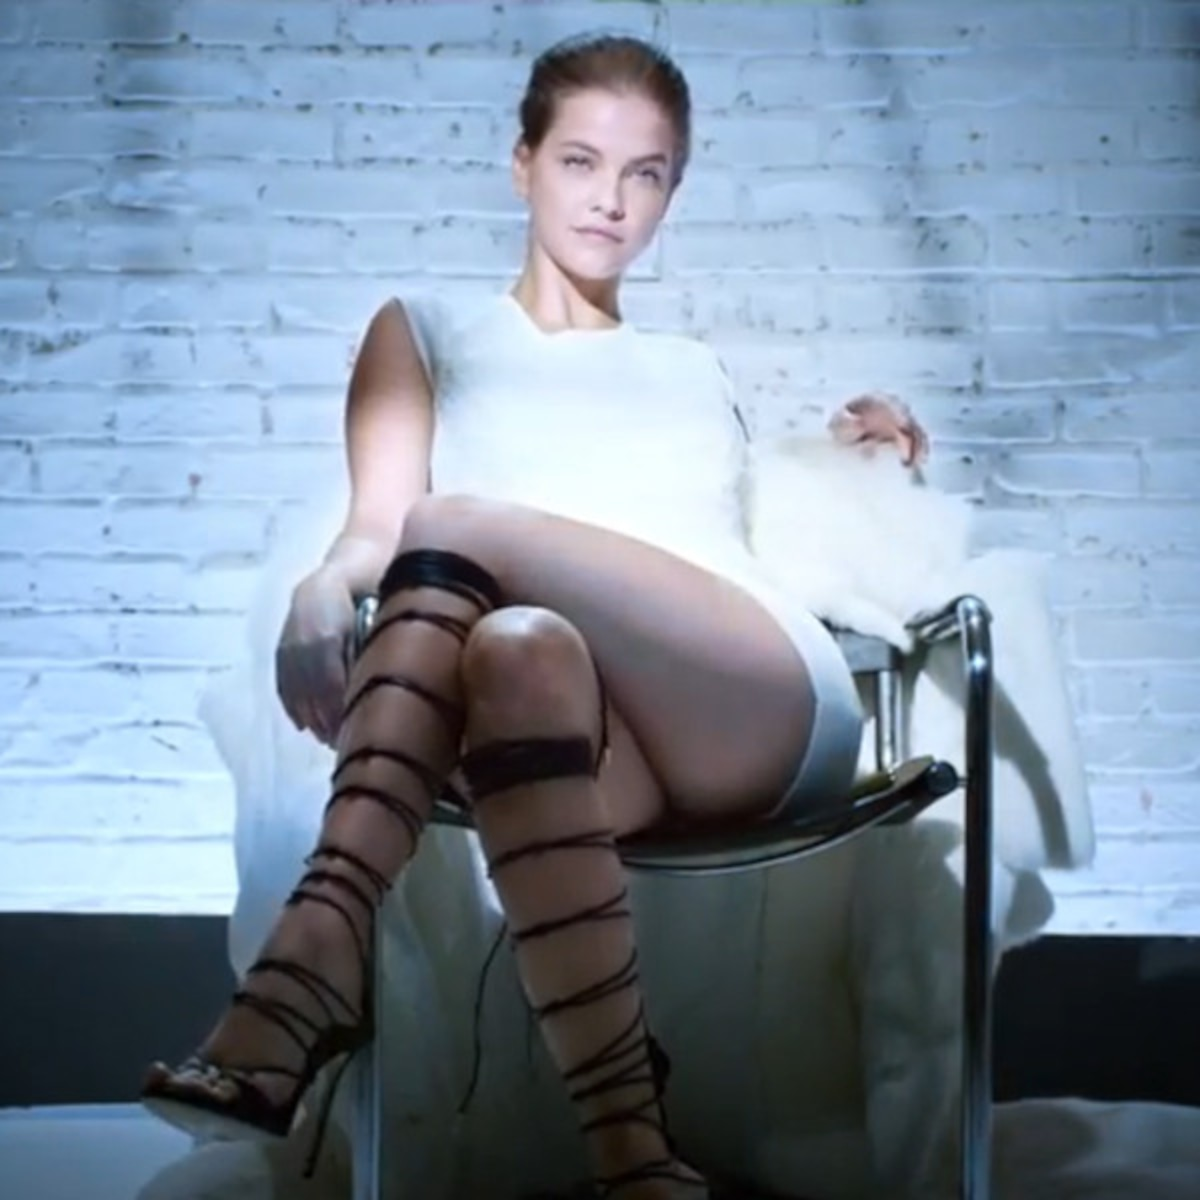 Animal Instincts 1992 Video barbara palvin channels sharon stone's in love calendar | e